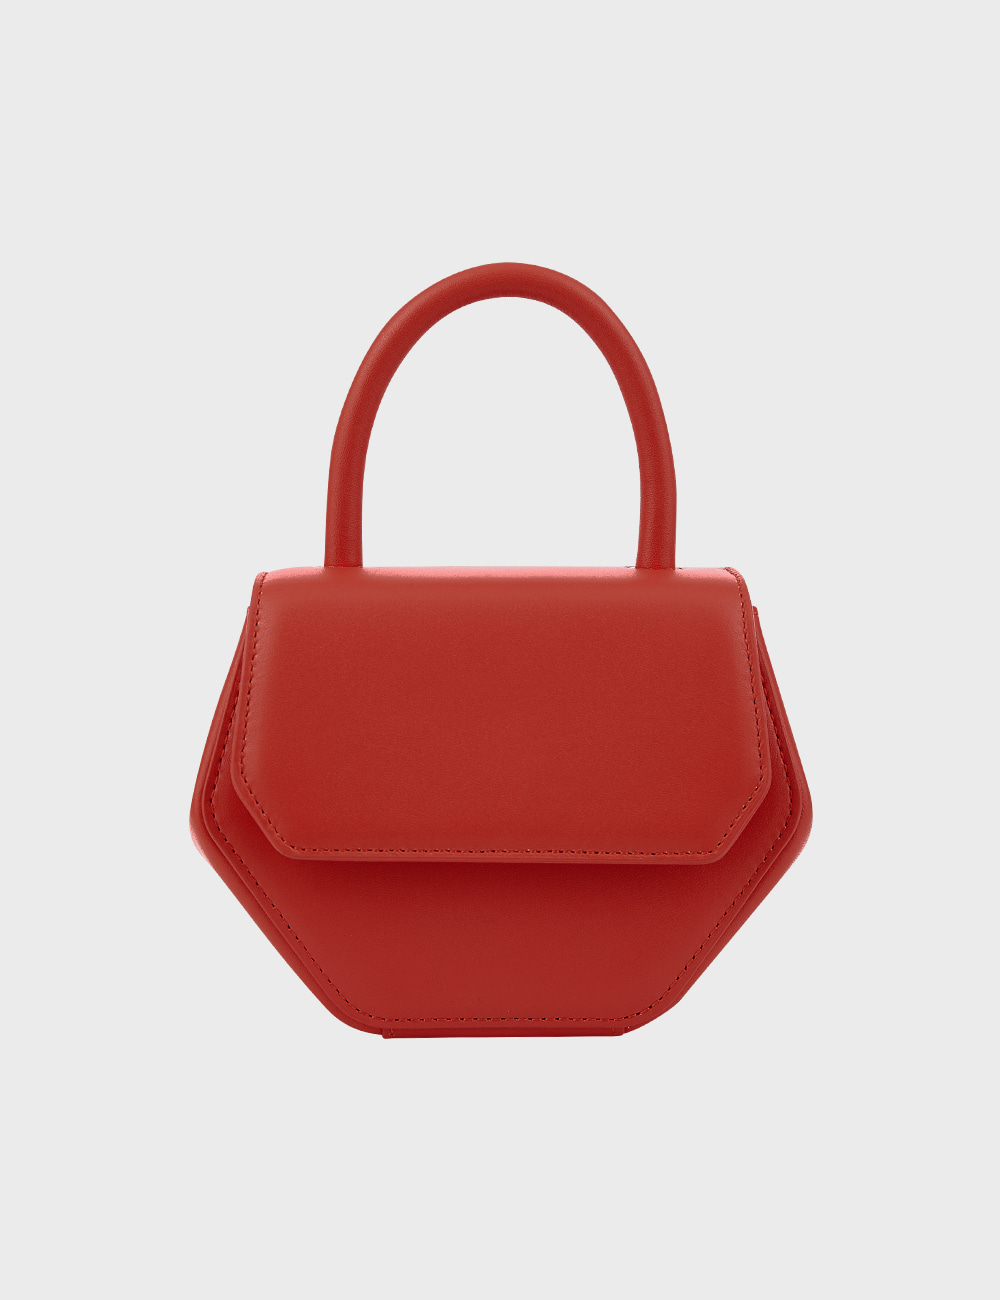 MAISON246,[메탈체인증정] 246 마고 MAGOT SMALL BAG - RED,246